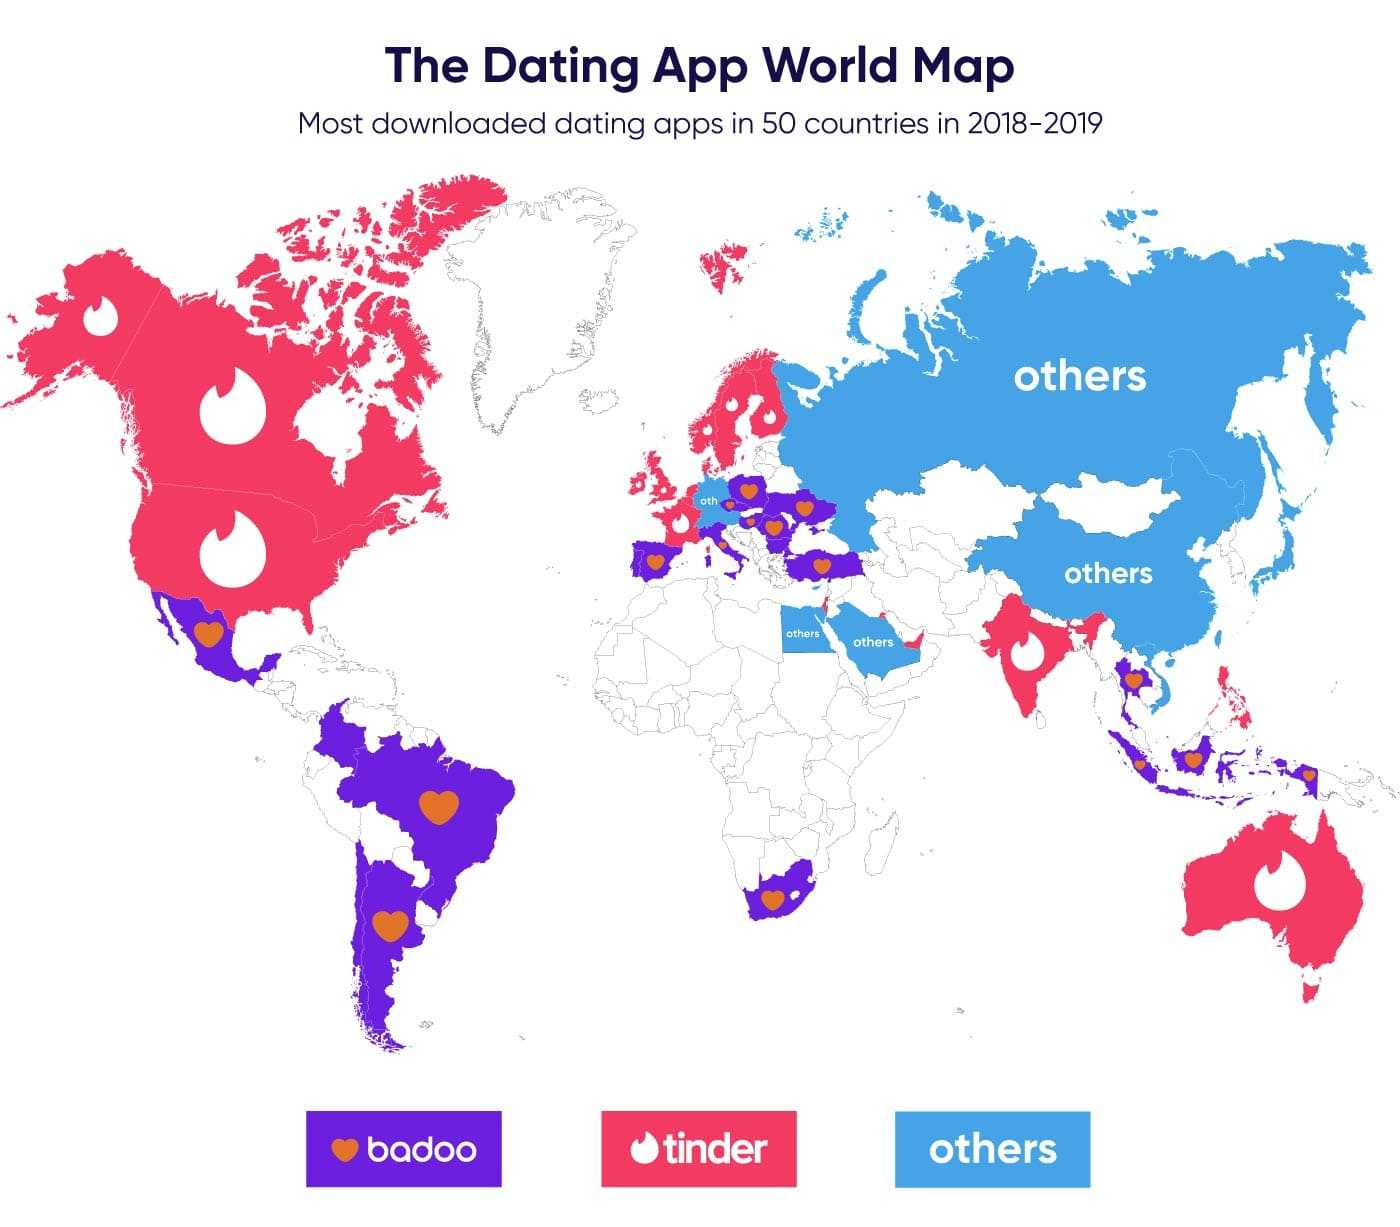 Most popular online dating apps map